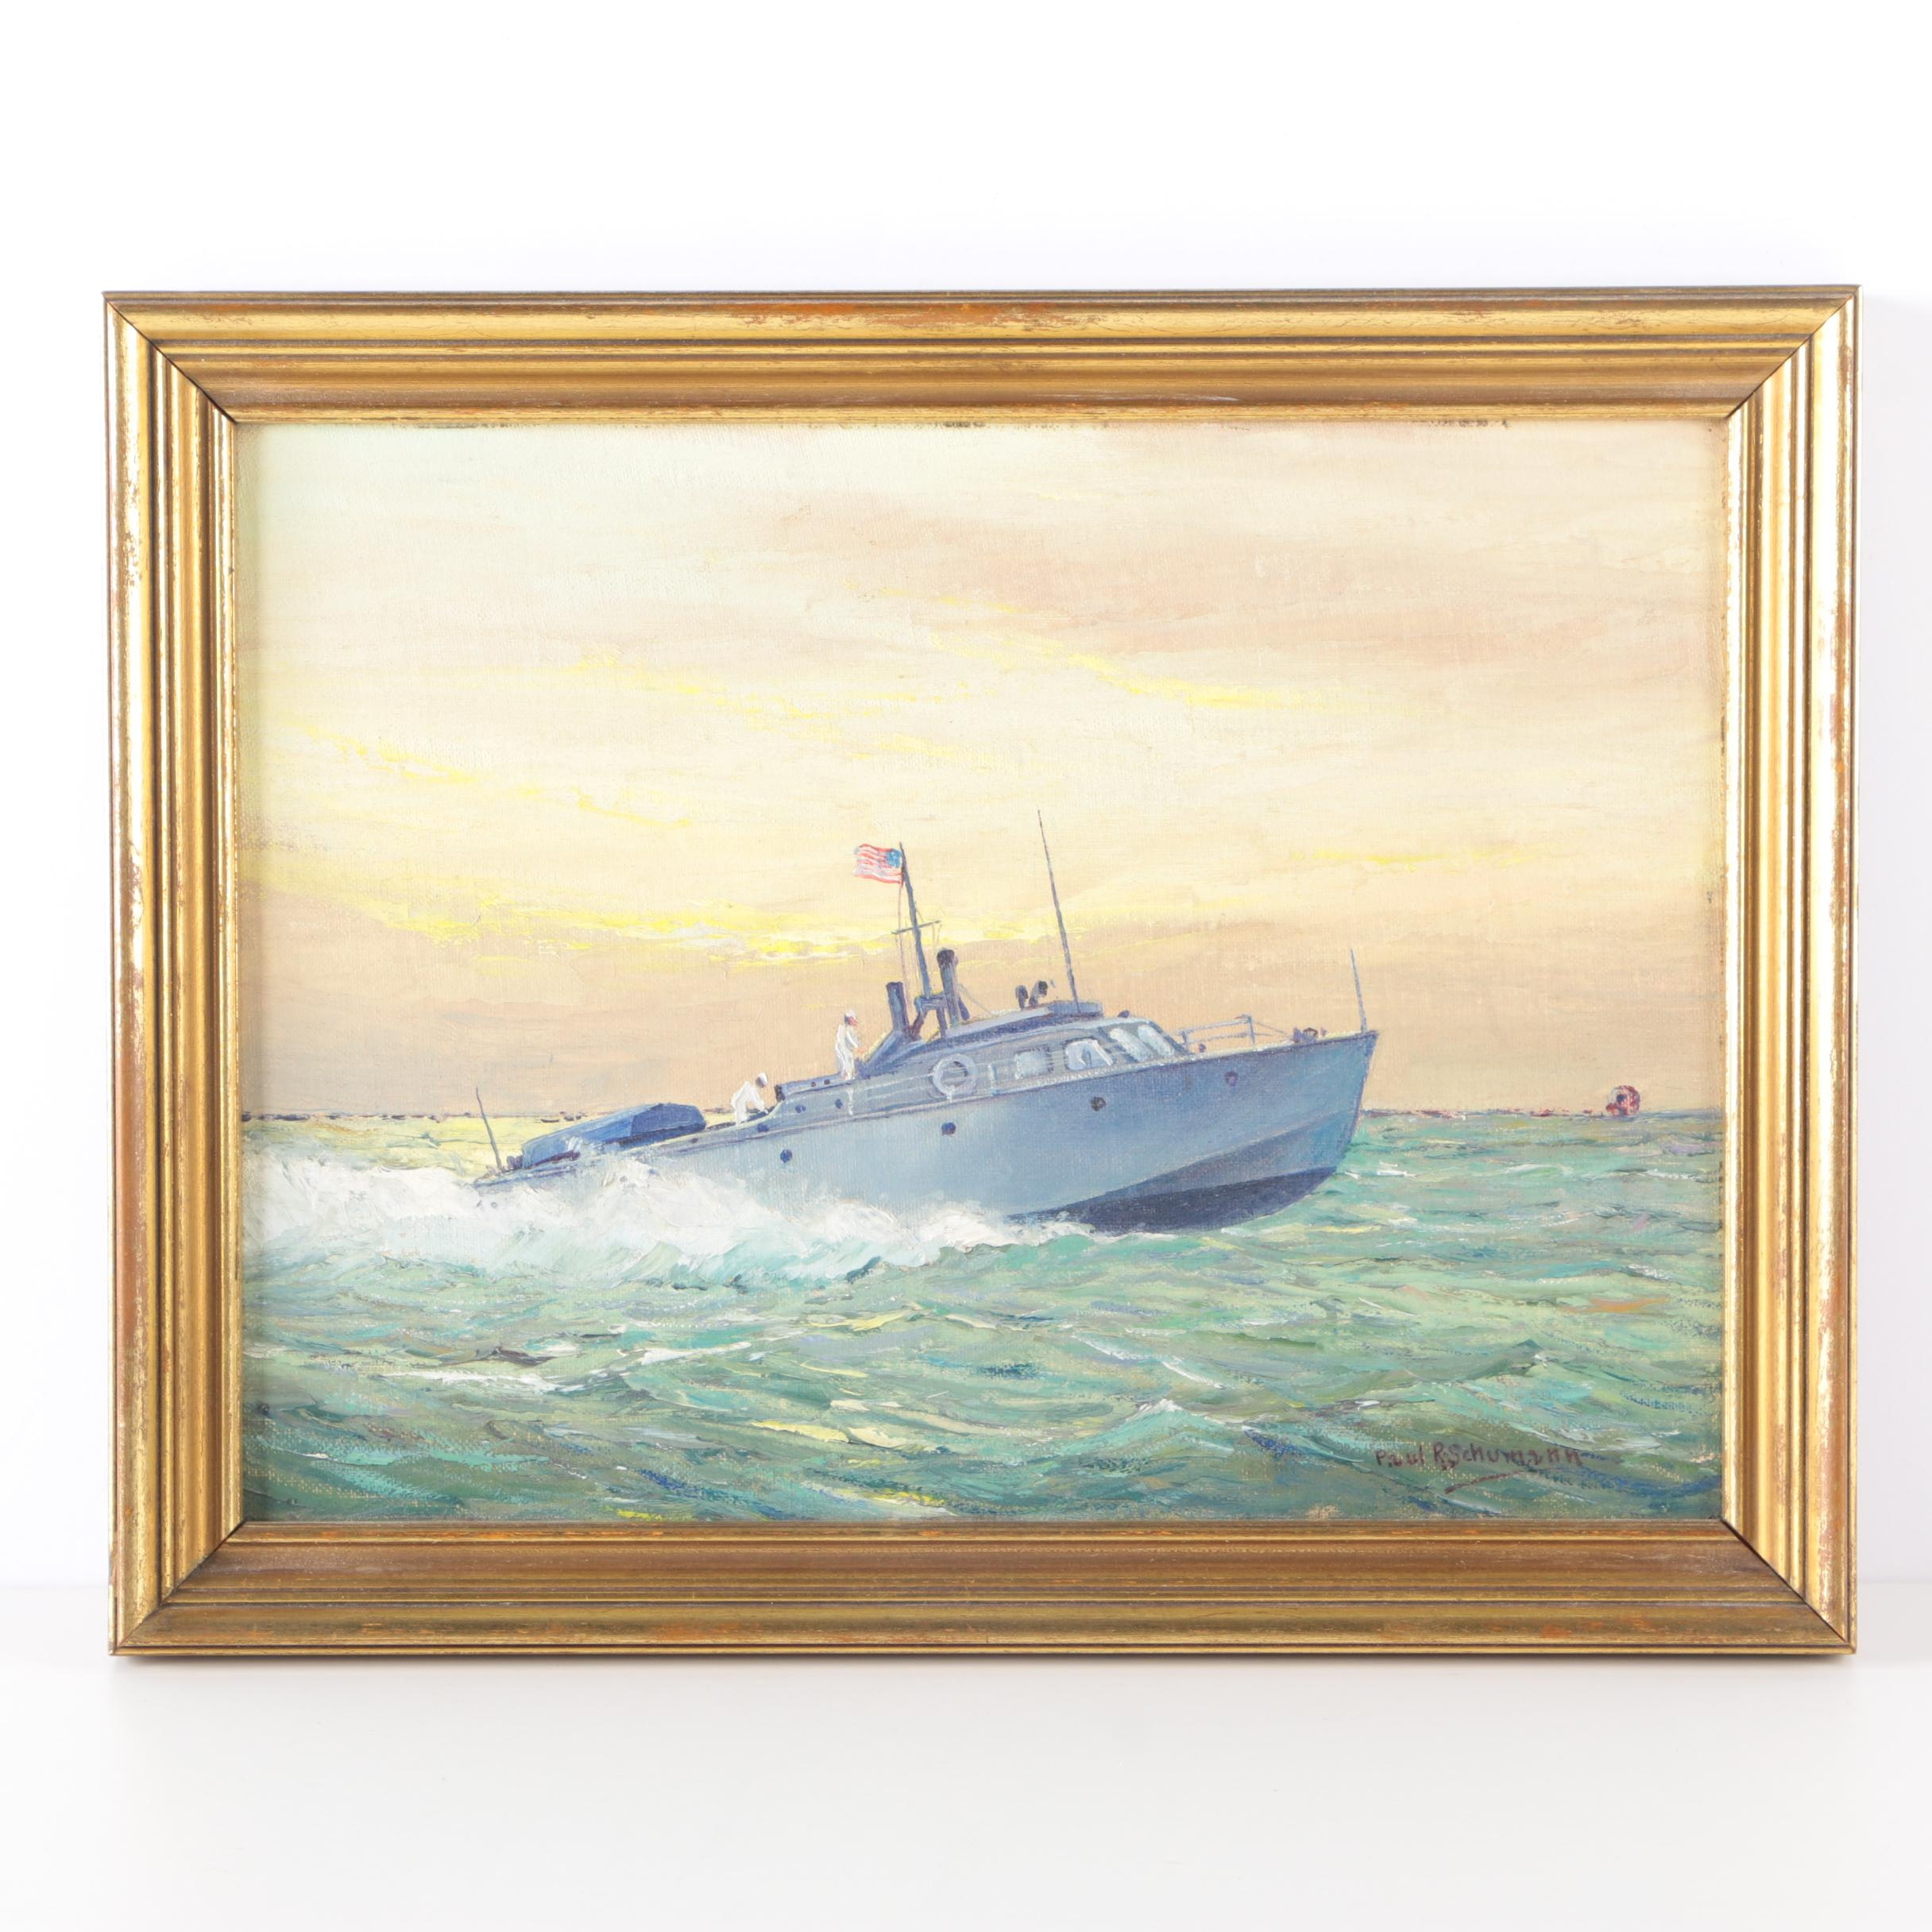 Paul R. Schumann Signed Oil on Canvas Board of US Naval Vessel